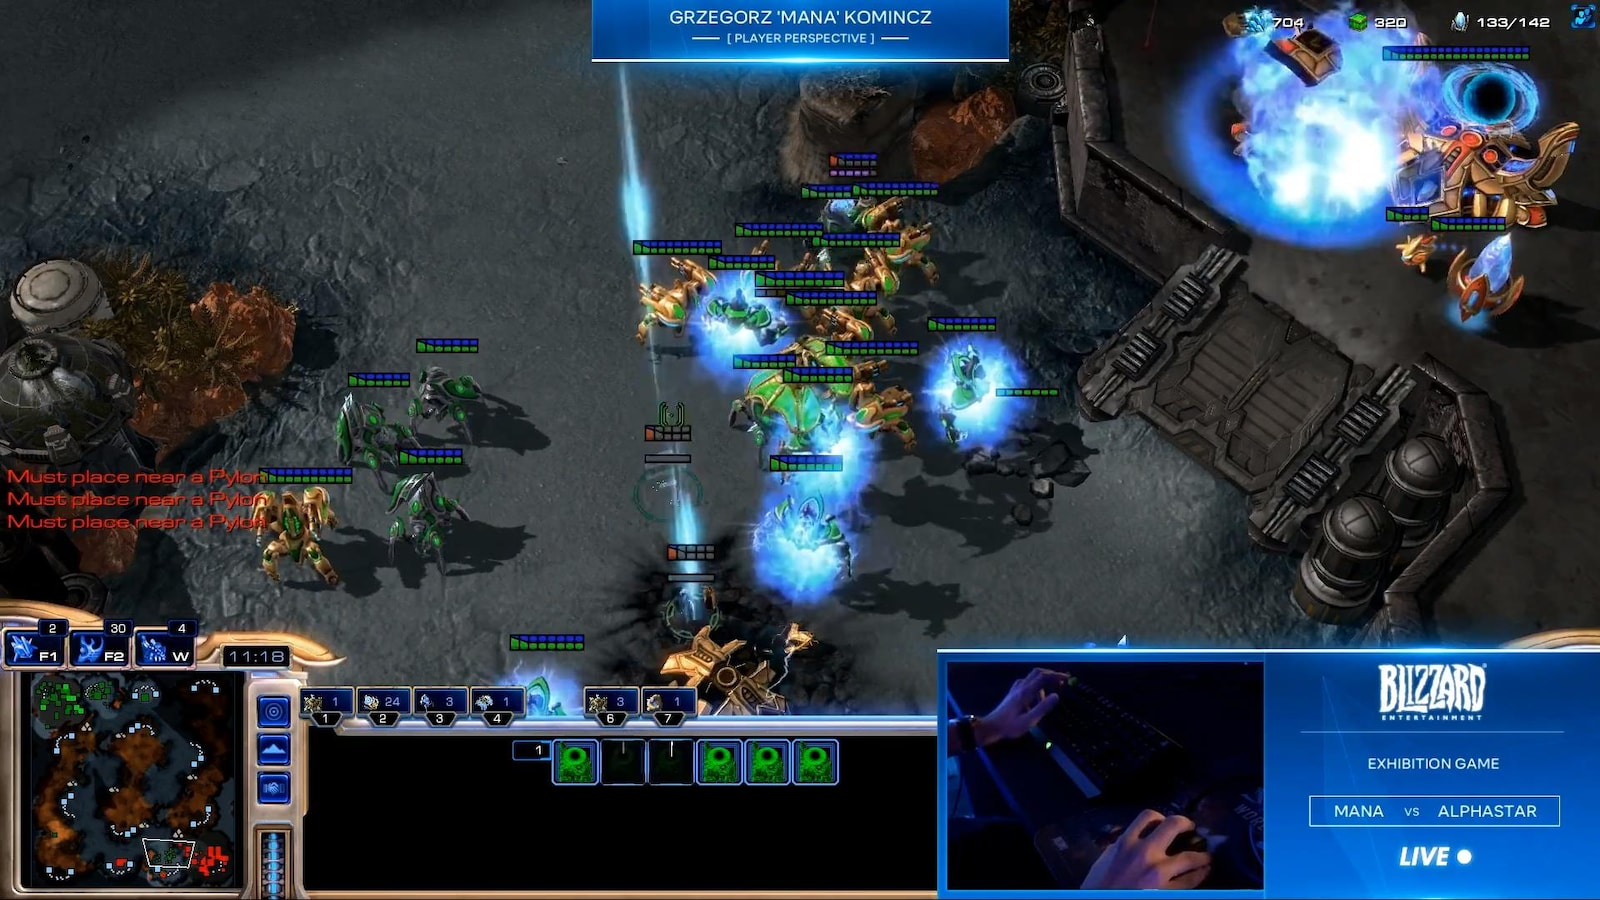 L'intelligence artificielle de Google a battu deux joueurs pros à StarCraft 2